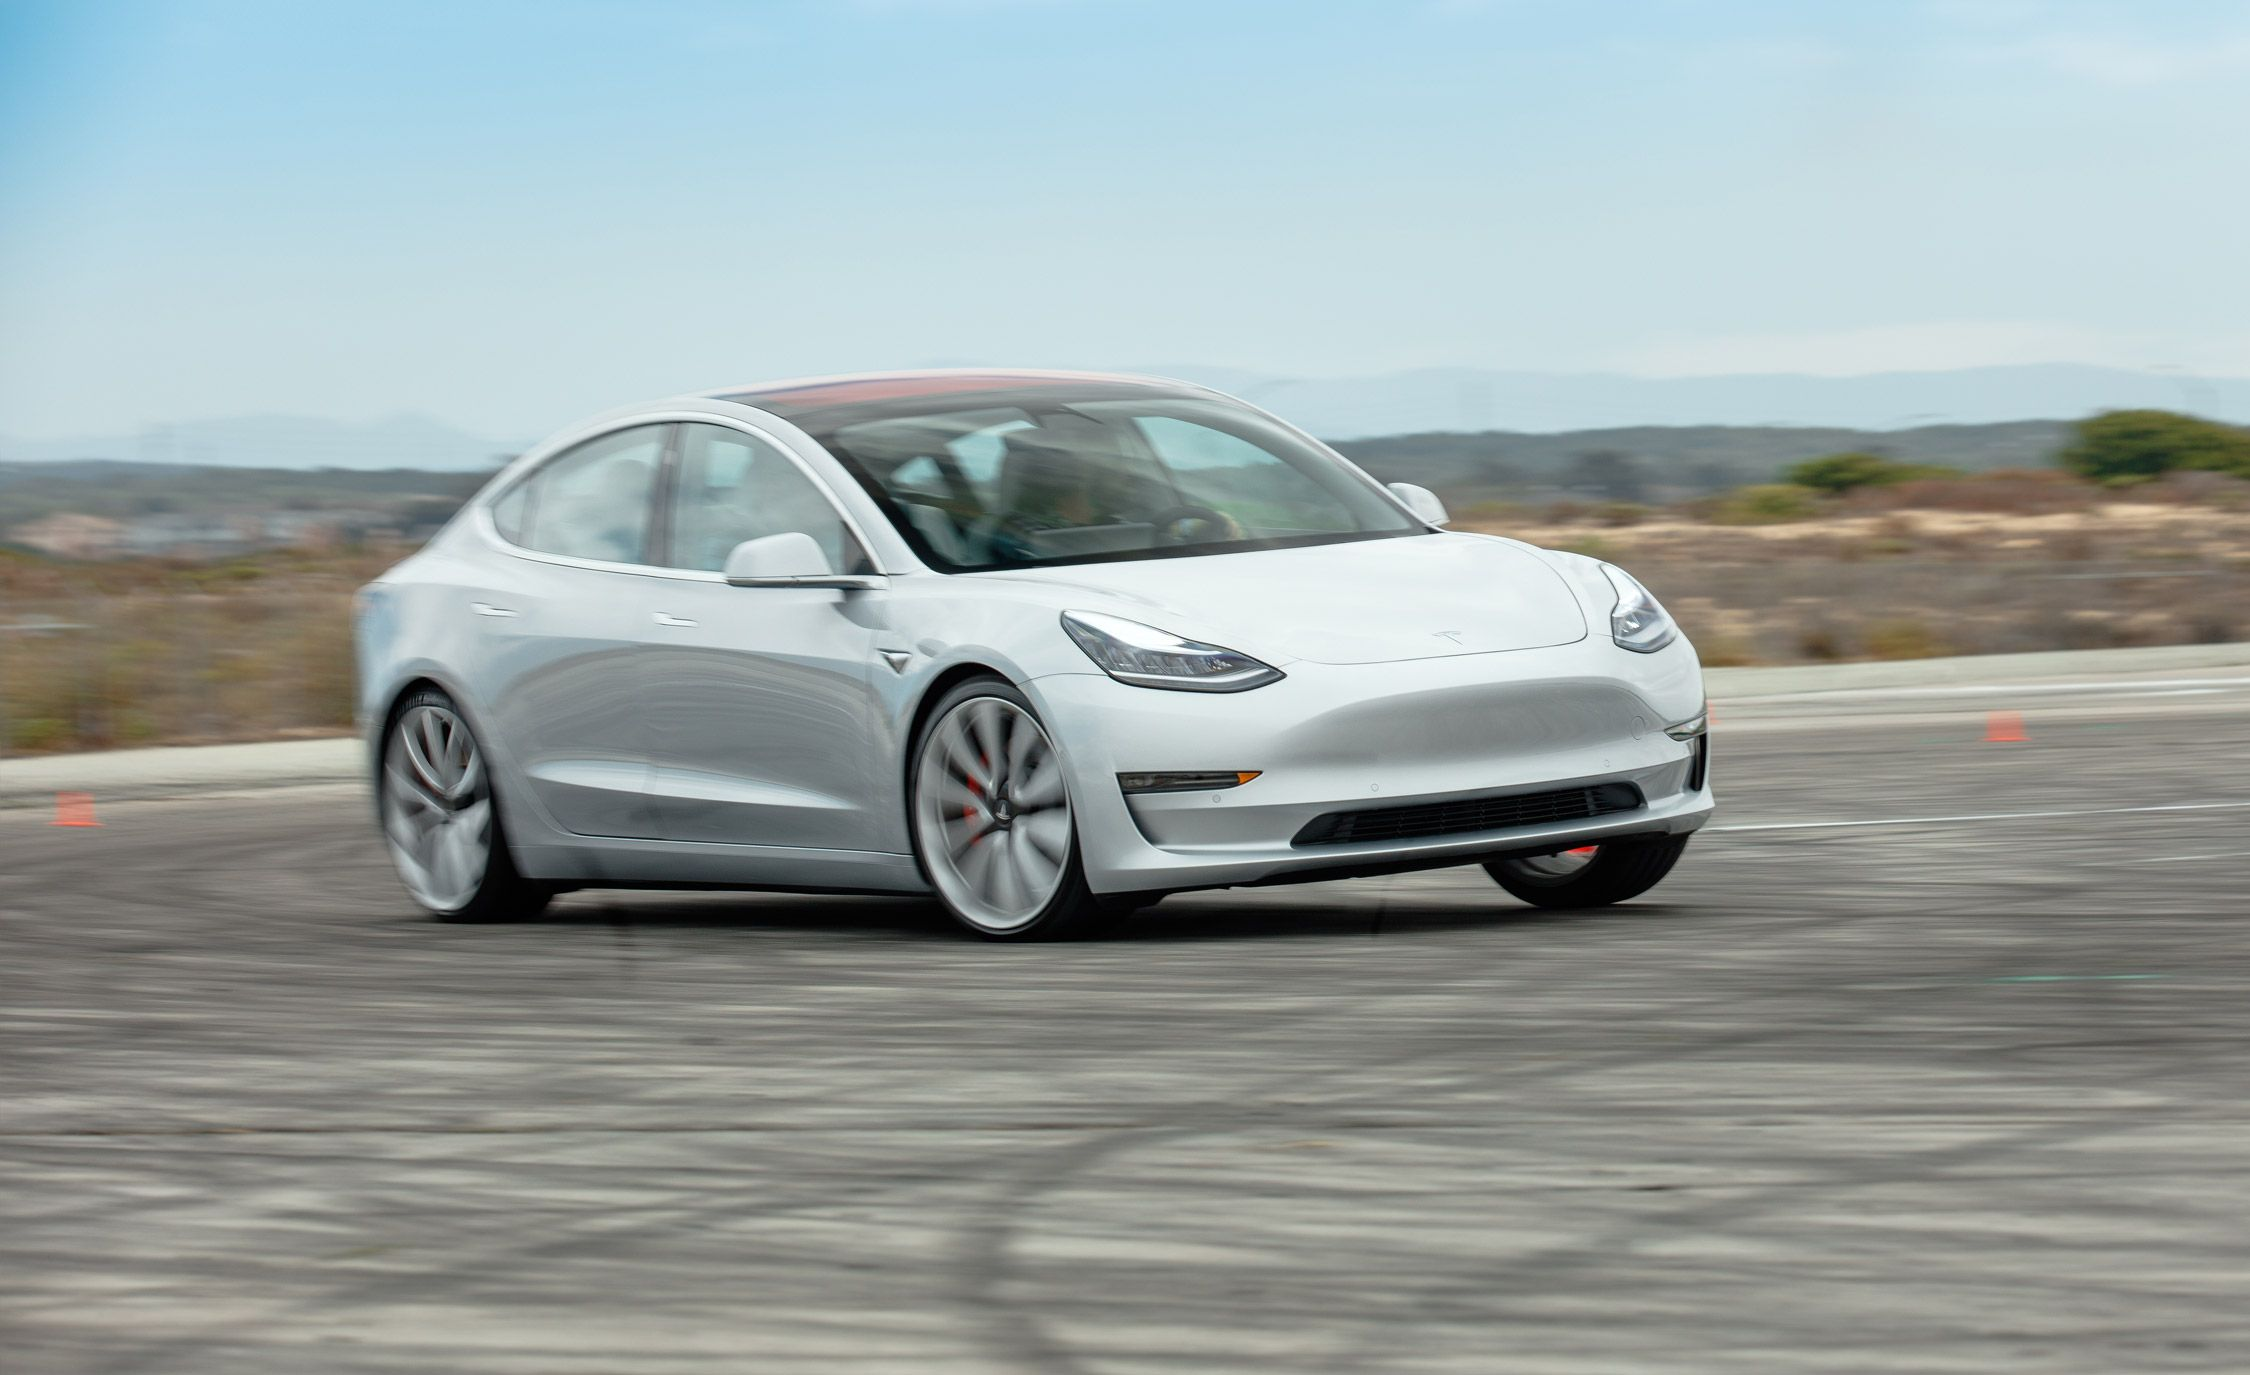 Pictures of the tesla model 3